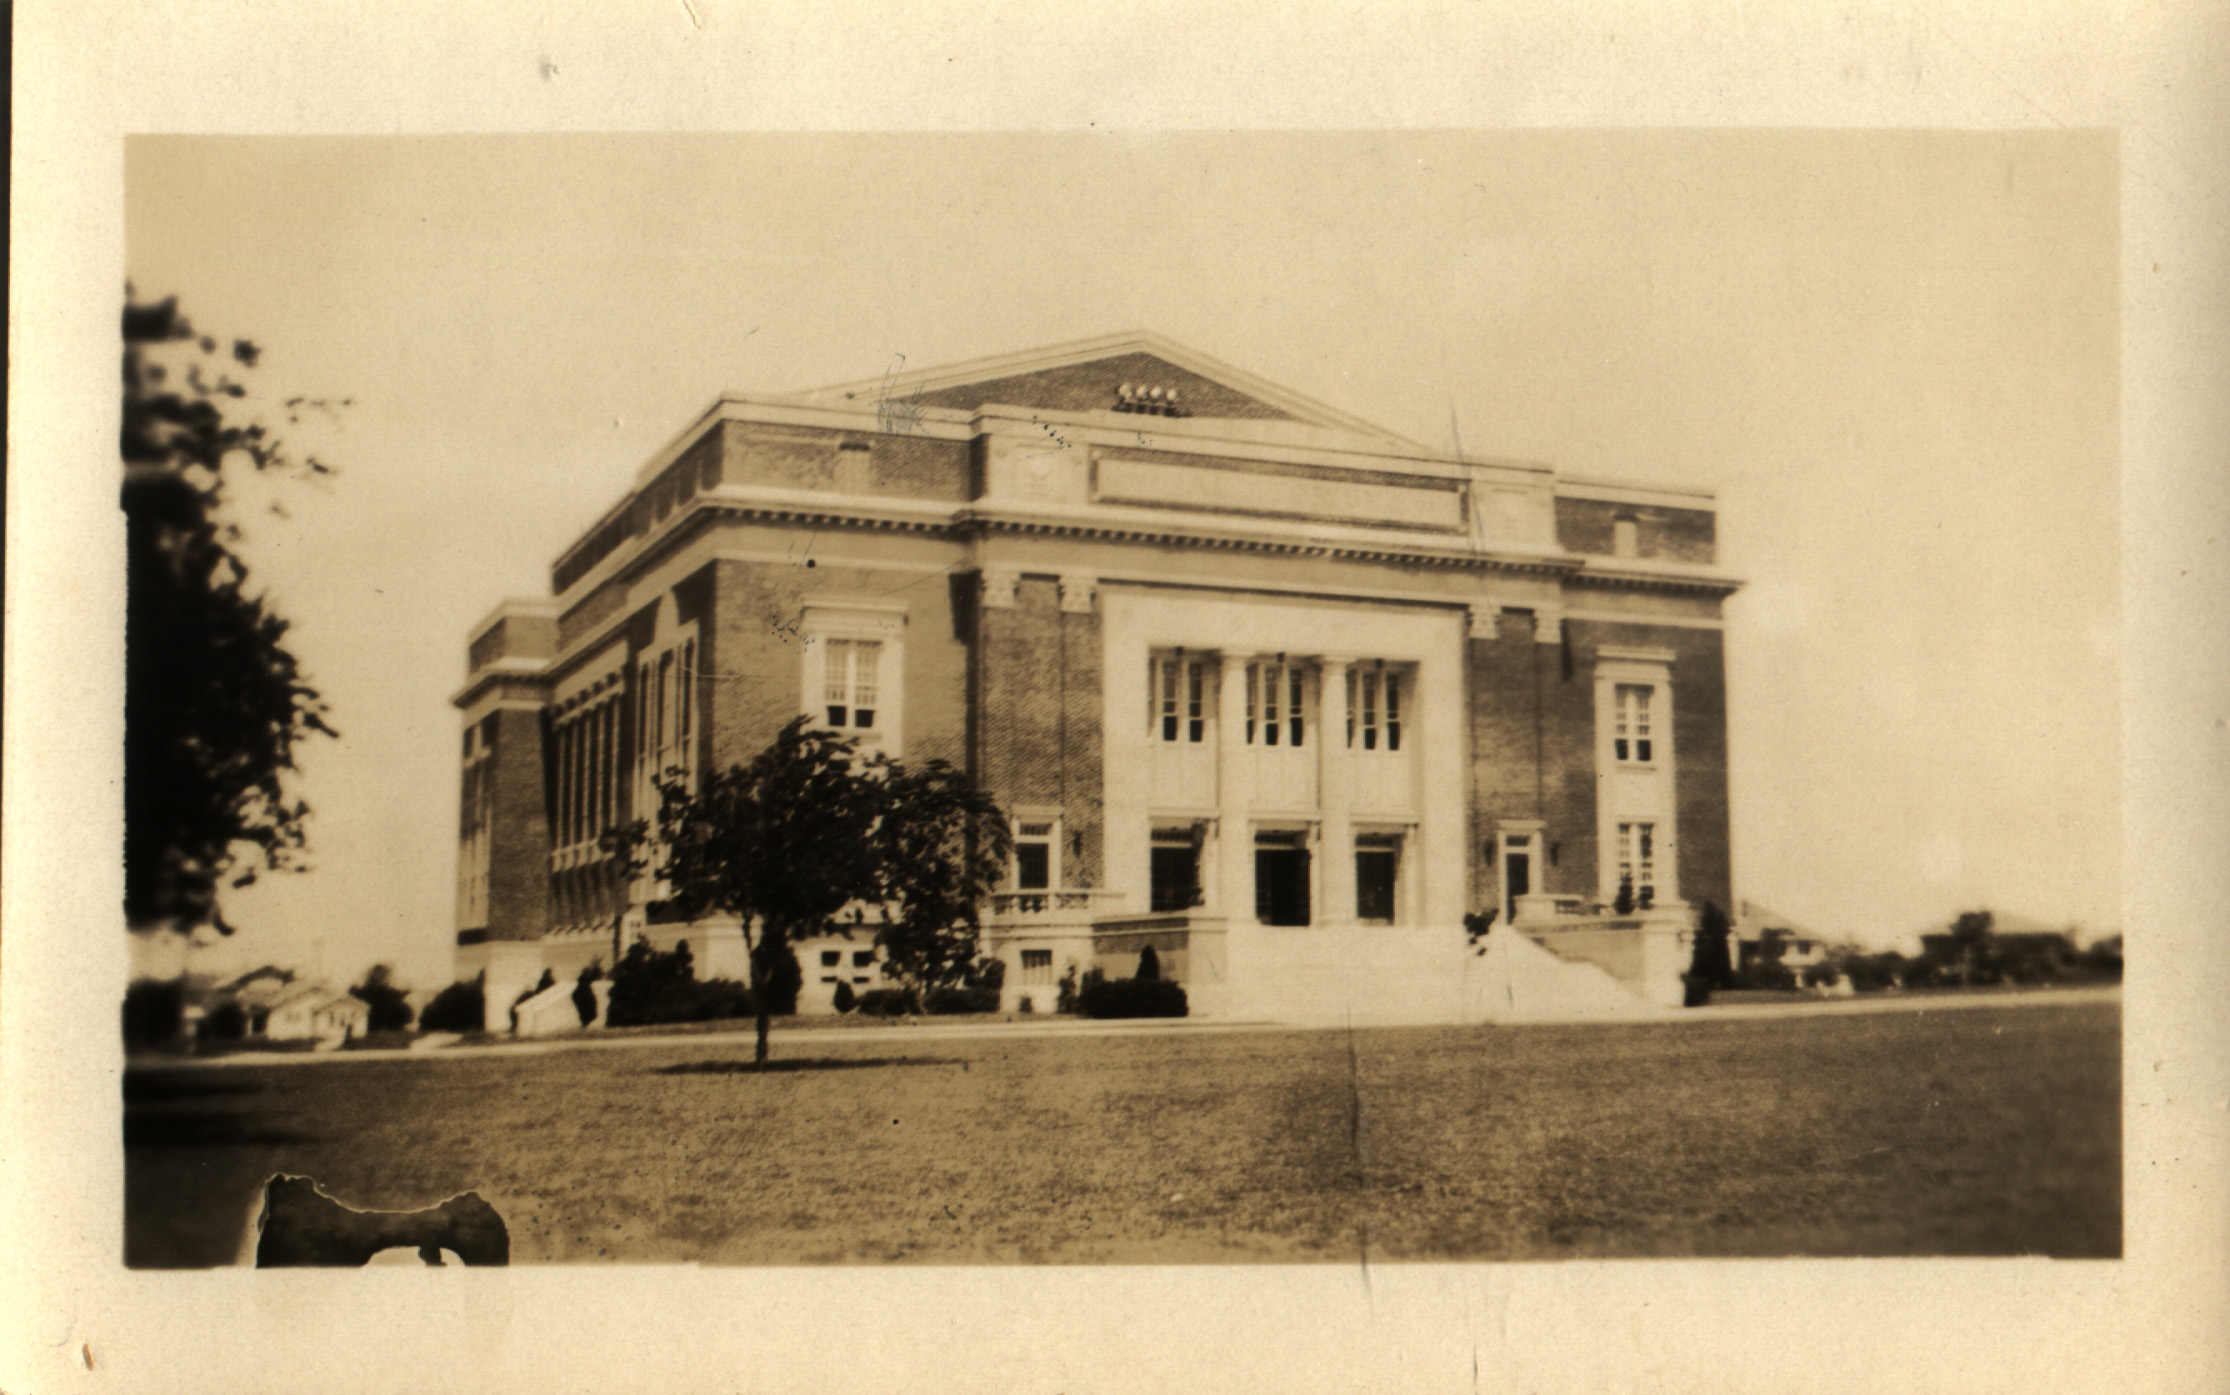 McFarlin Auditorium in 1917